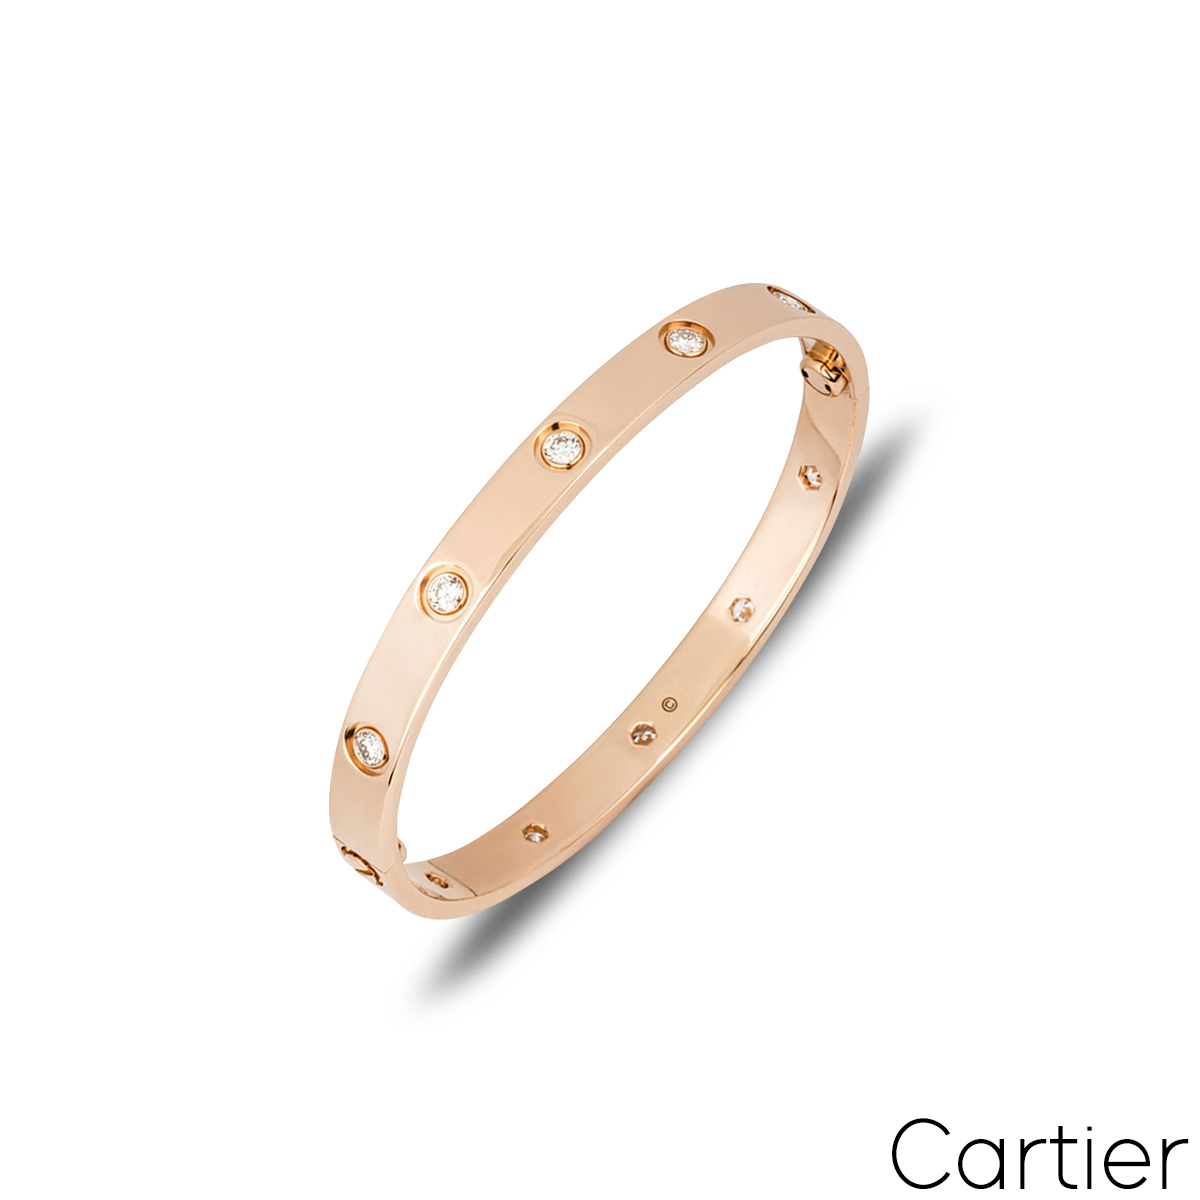 Cartier Rose Gold Full Diamond Love Bracelet Size 16 B6040616